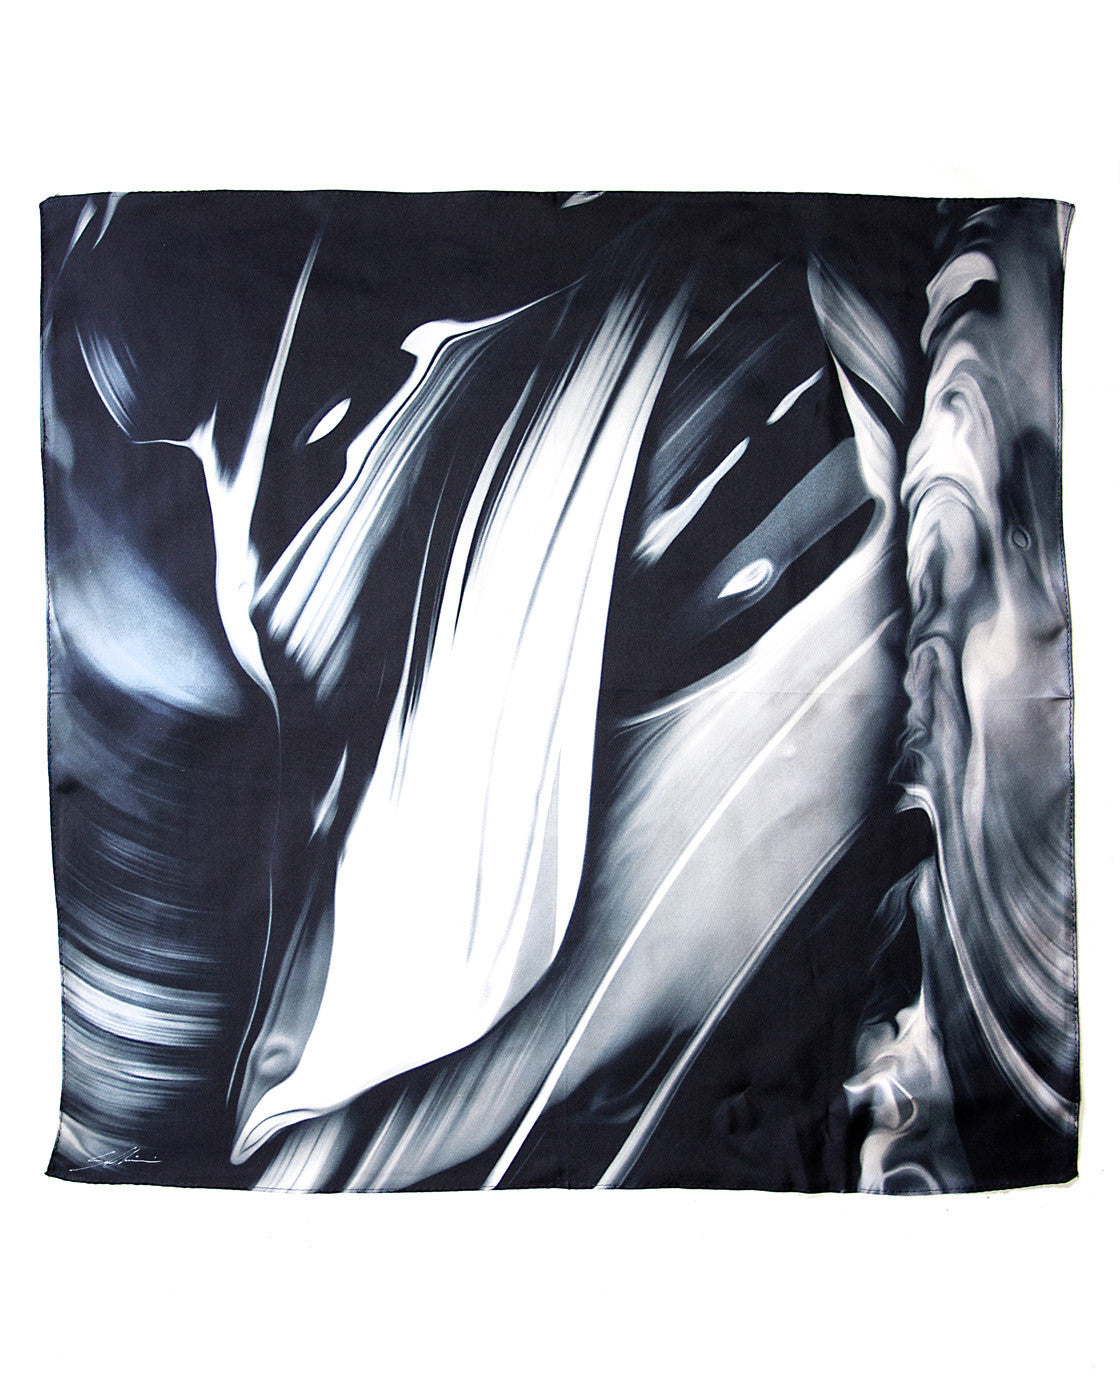 ONE CUSTOM 100% SILK SCARF<br>(Auster x Sam Chirnside)